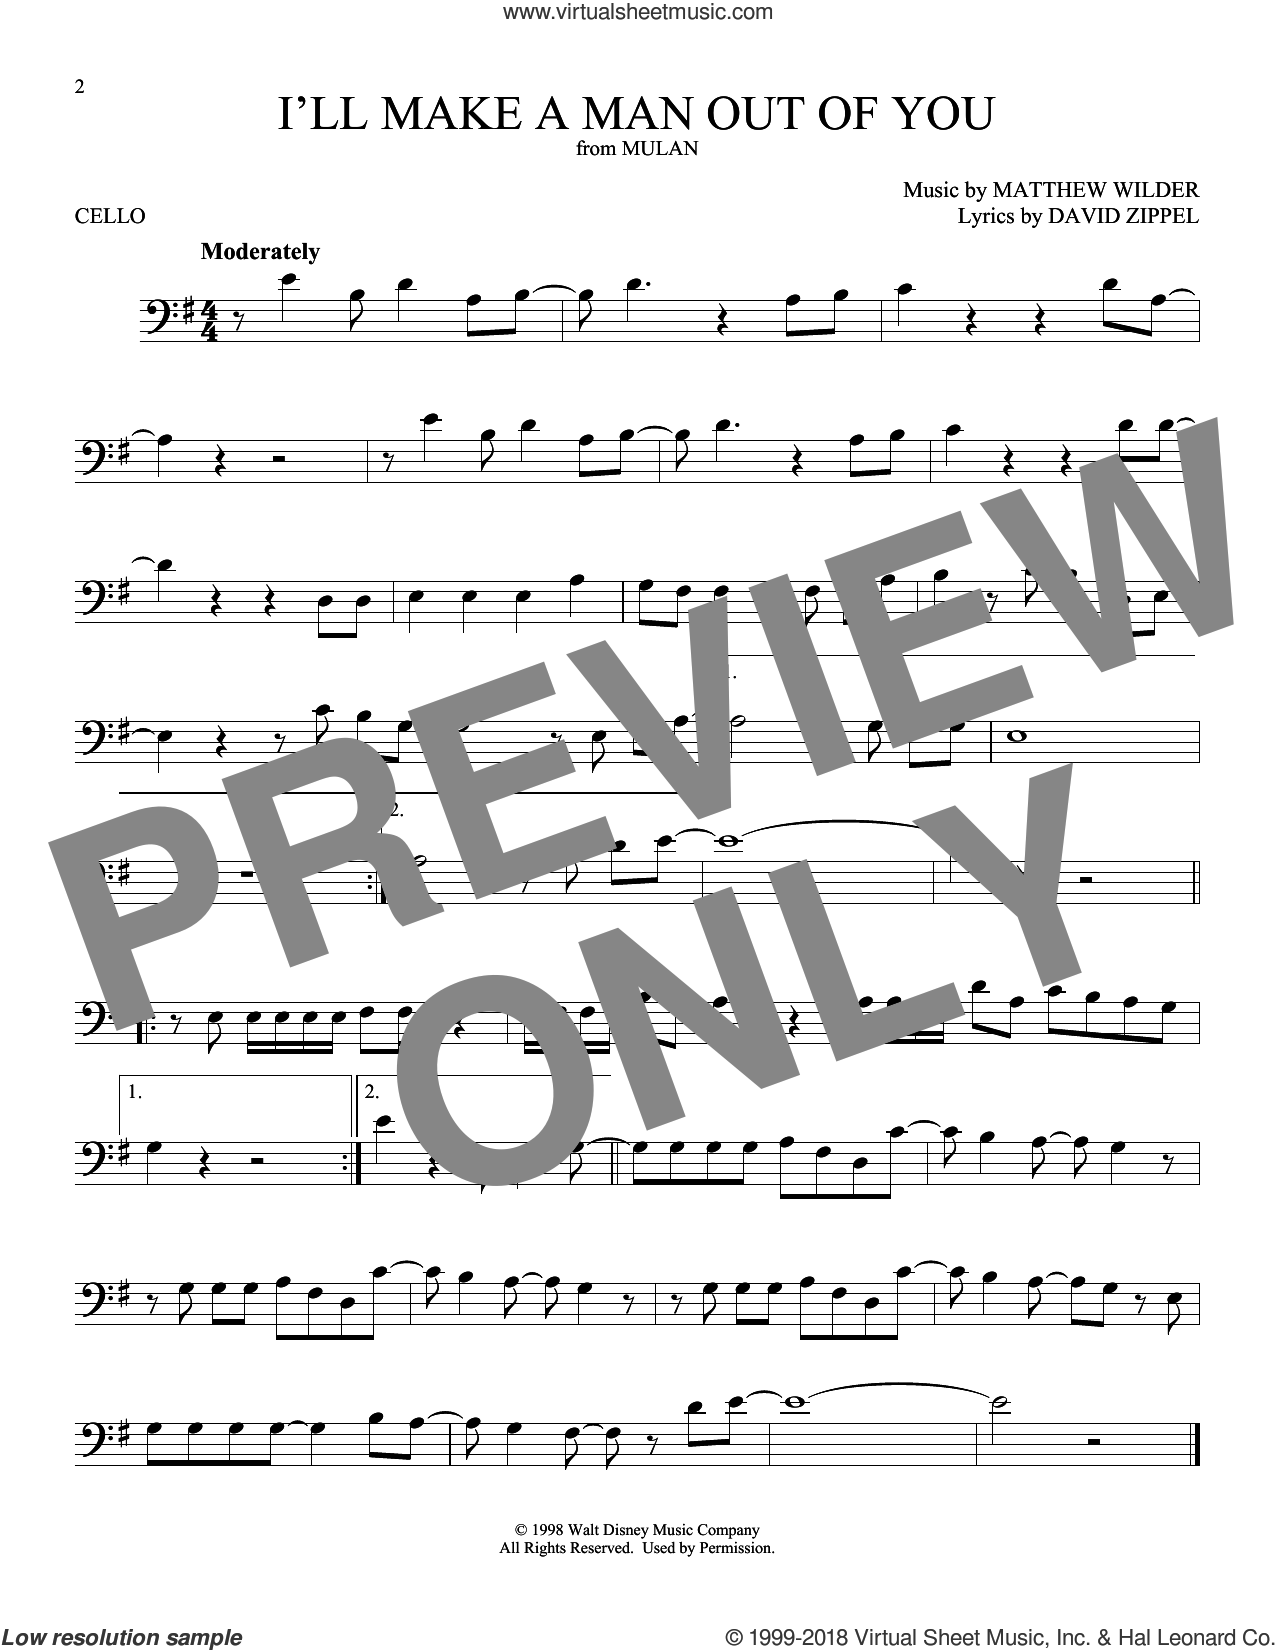 I'll Make A Man Out Of You (from Mulan) sheet music for cello solo by David Zippel and Matthew Wilder, intermediate skill level